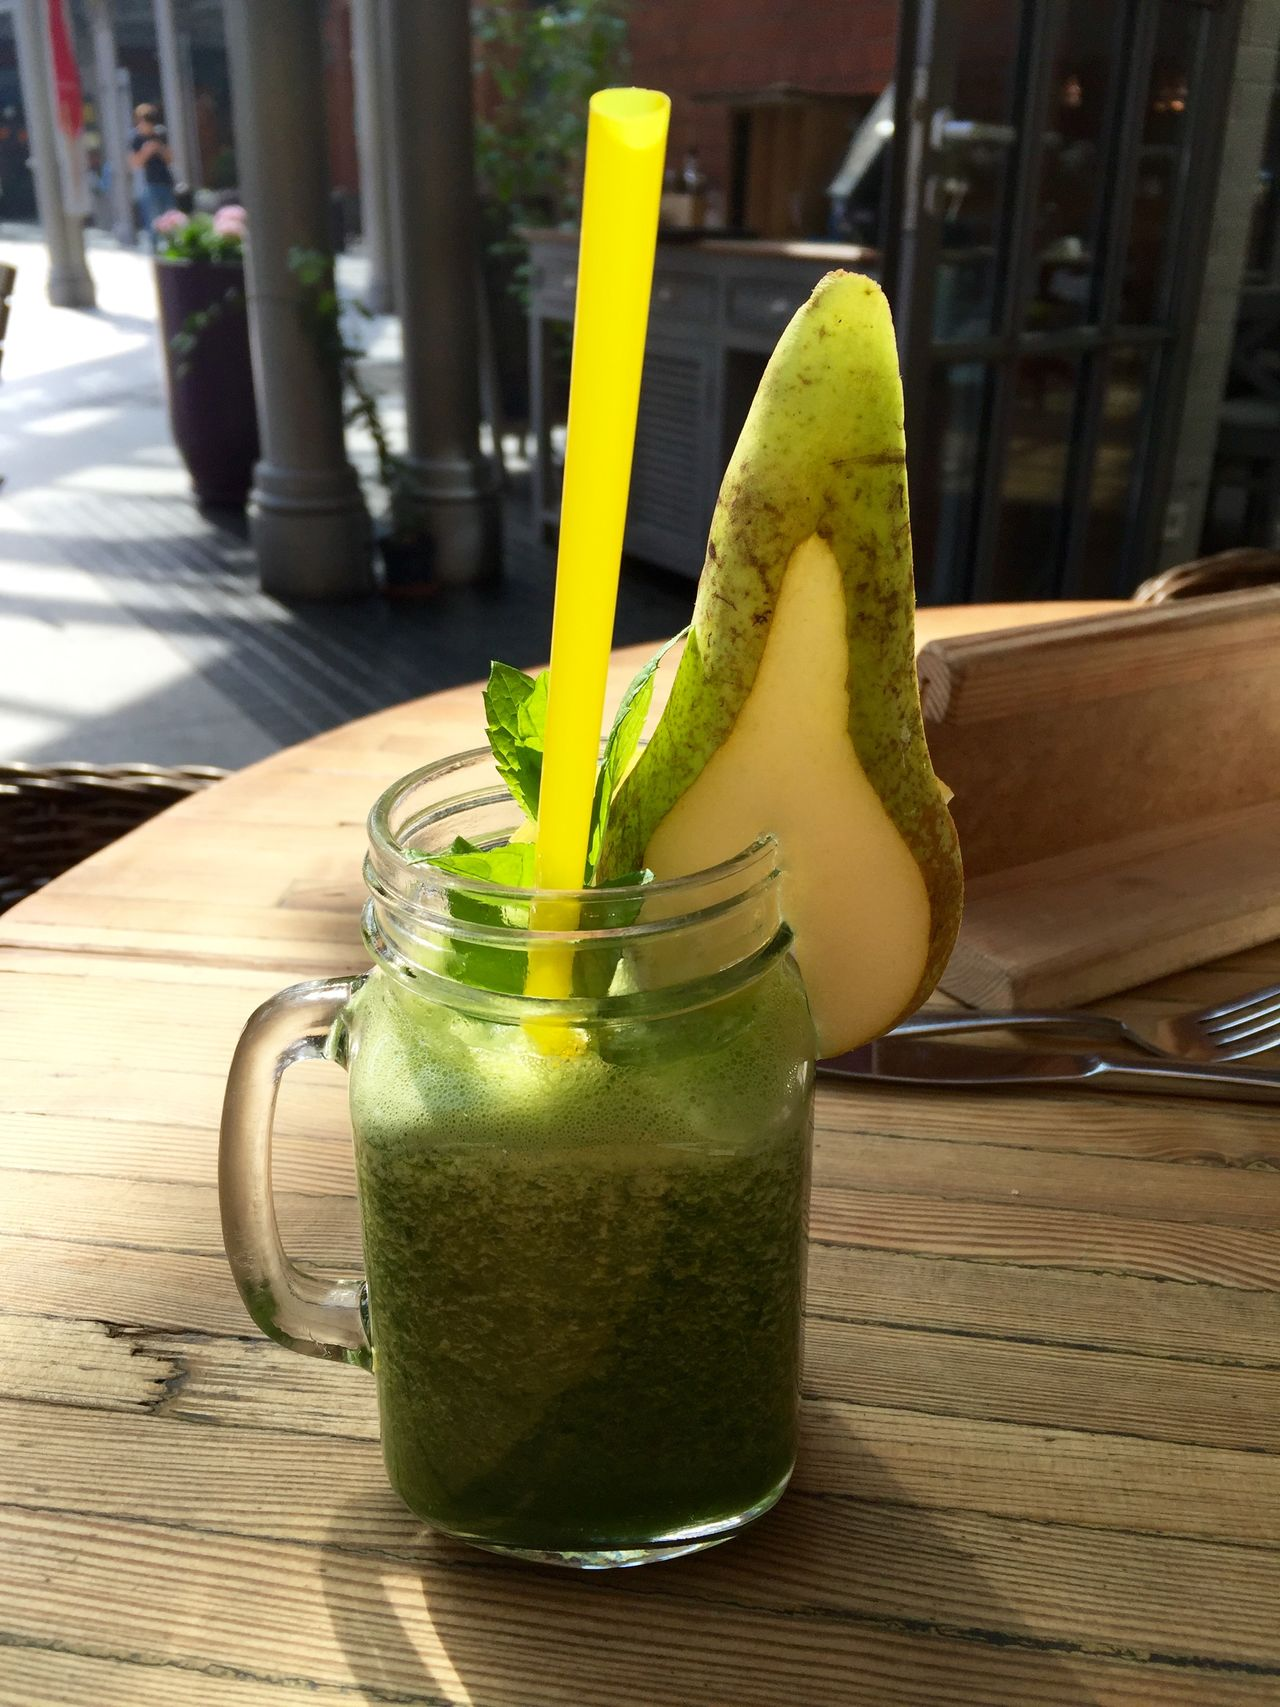 Freshness Green Color Greencoctail Parsley Pear Refreshment Shake Spinach Superfood